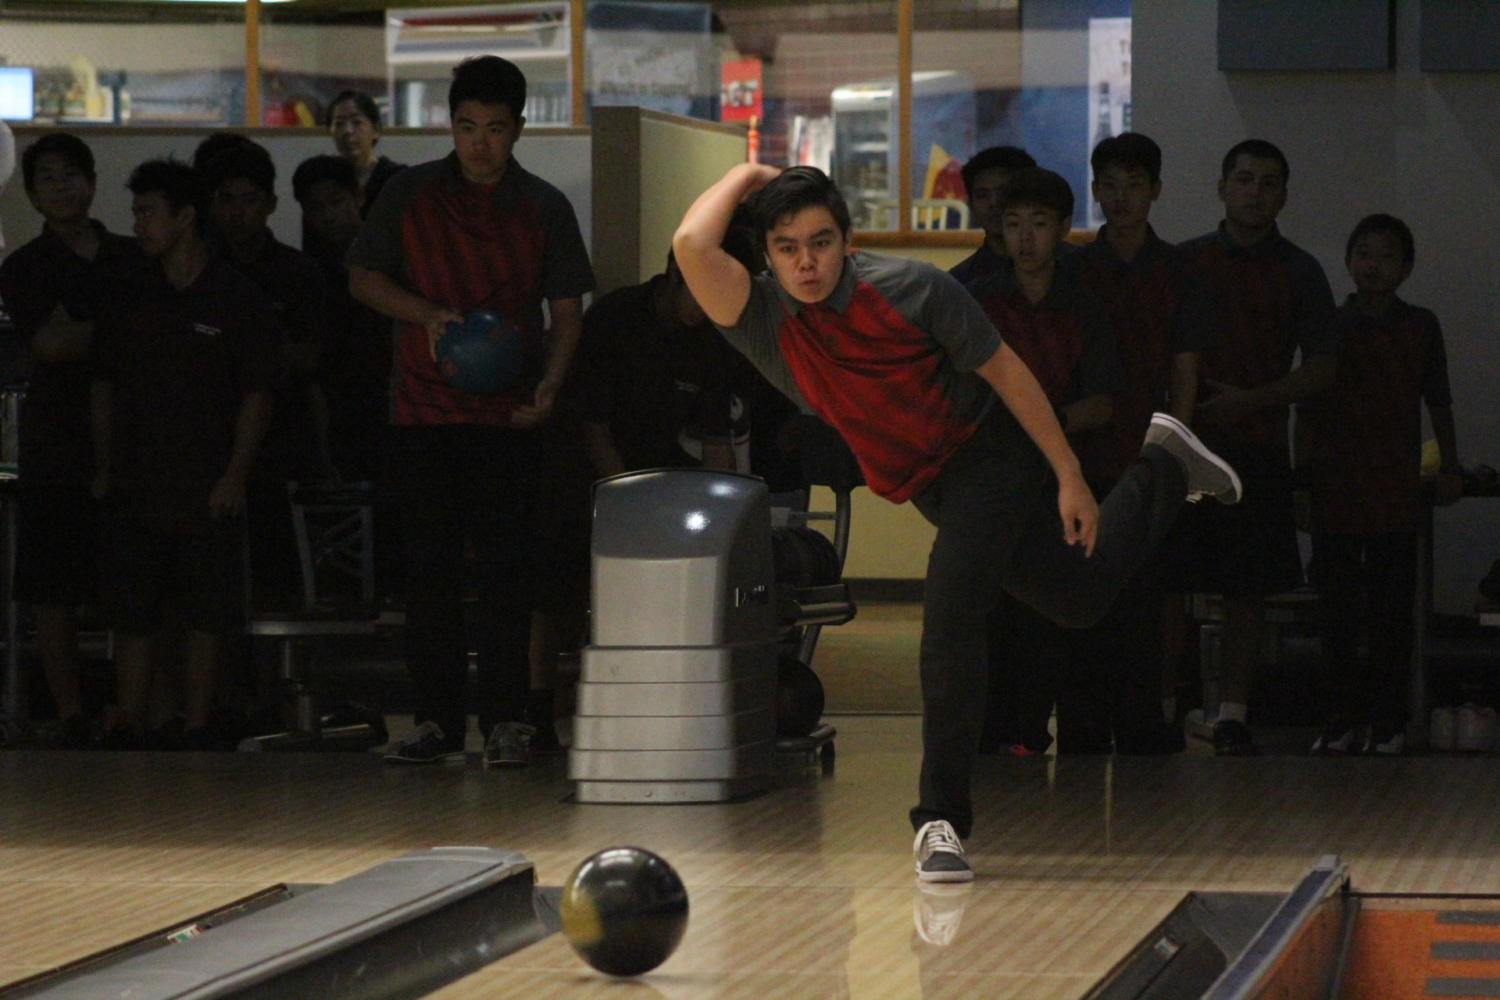 Dylan Shugart bowling at K-Bay Bowling Alley. Photo by Noah Tamura 2017.